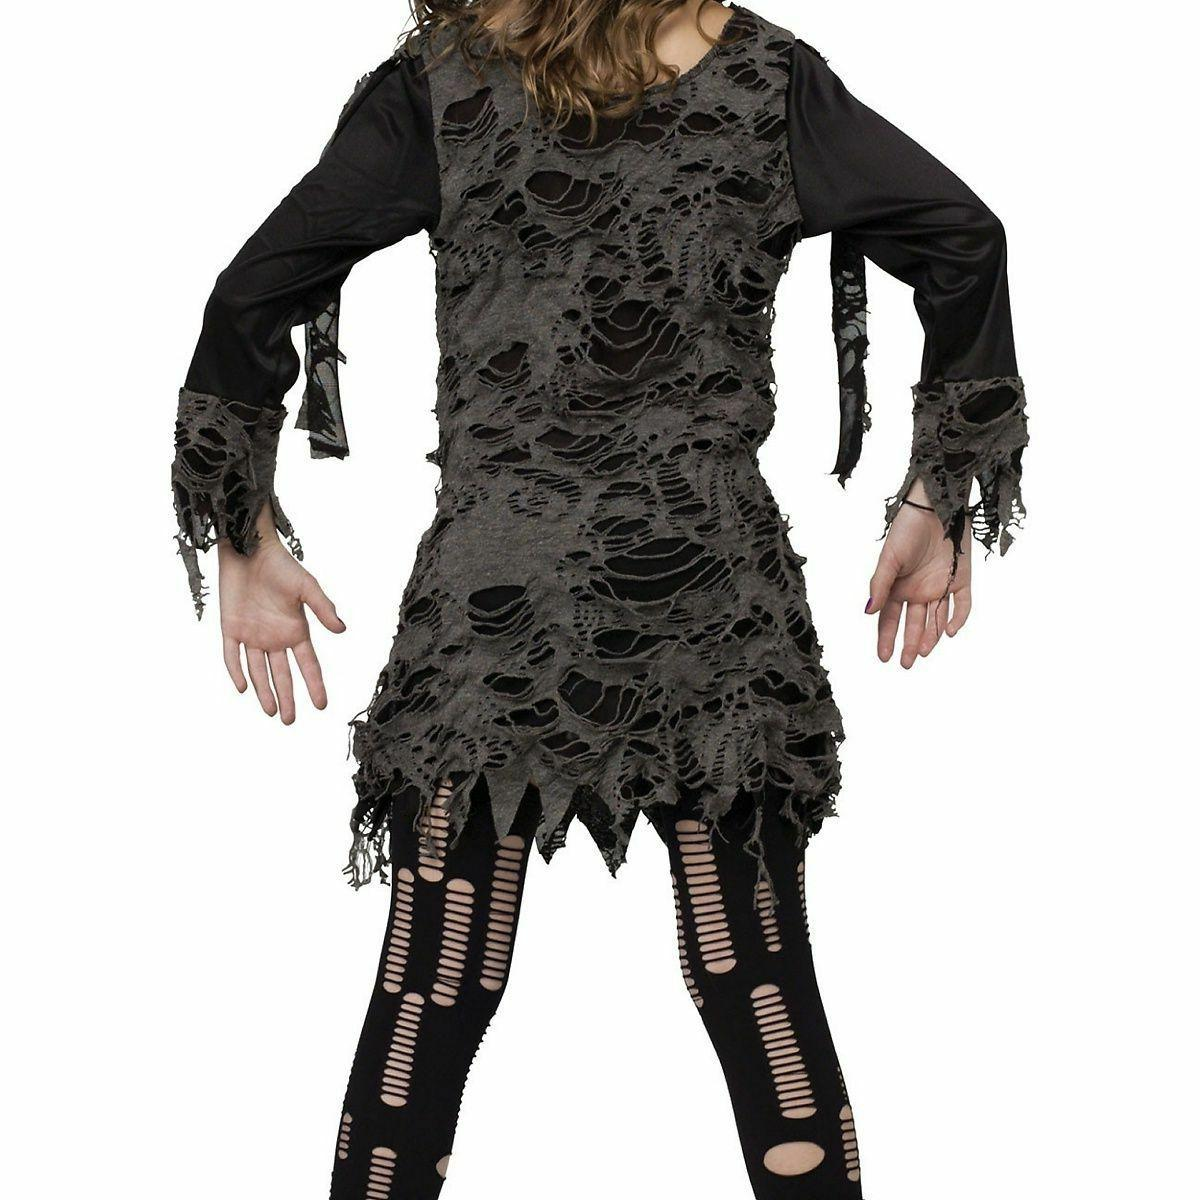 Walking Zombie Costume for Girls size & 12-14 New by World